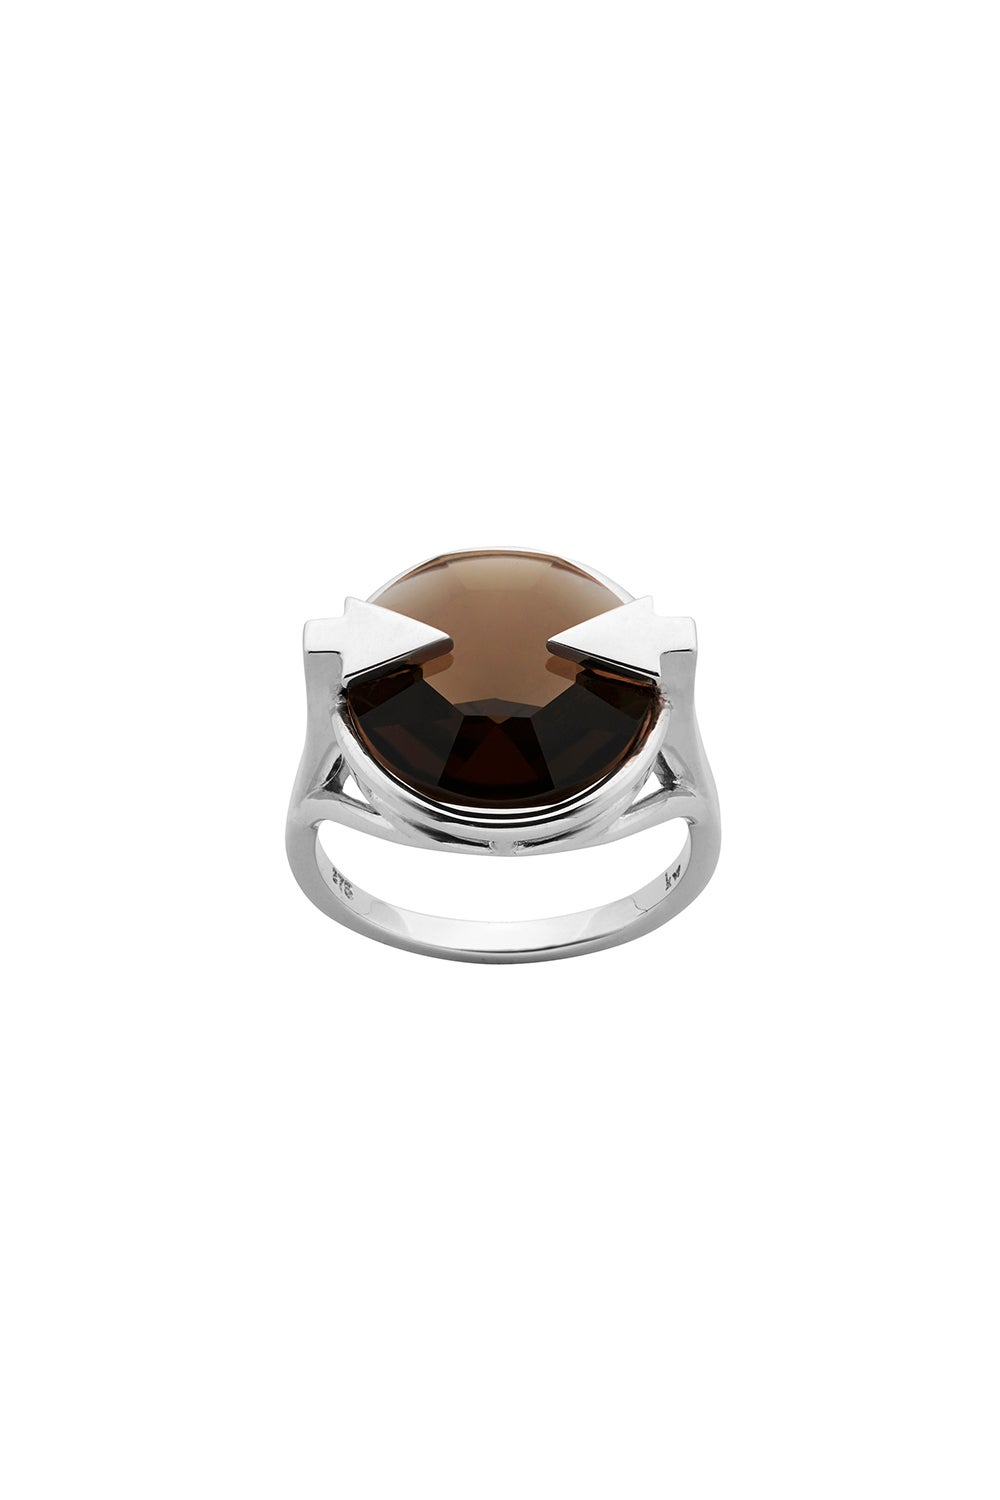 Navigator Ring with 14mm Round Smoky Quartz Silver